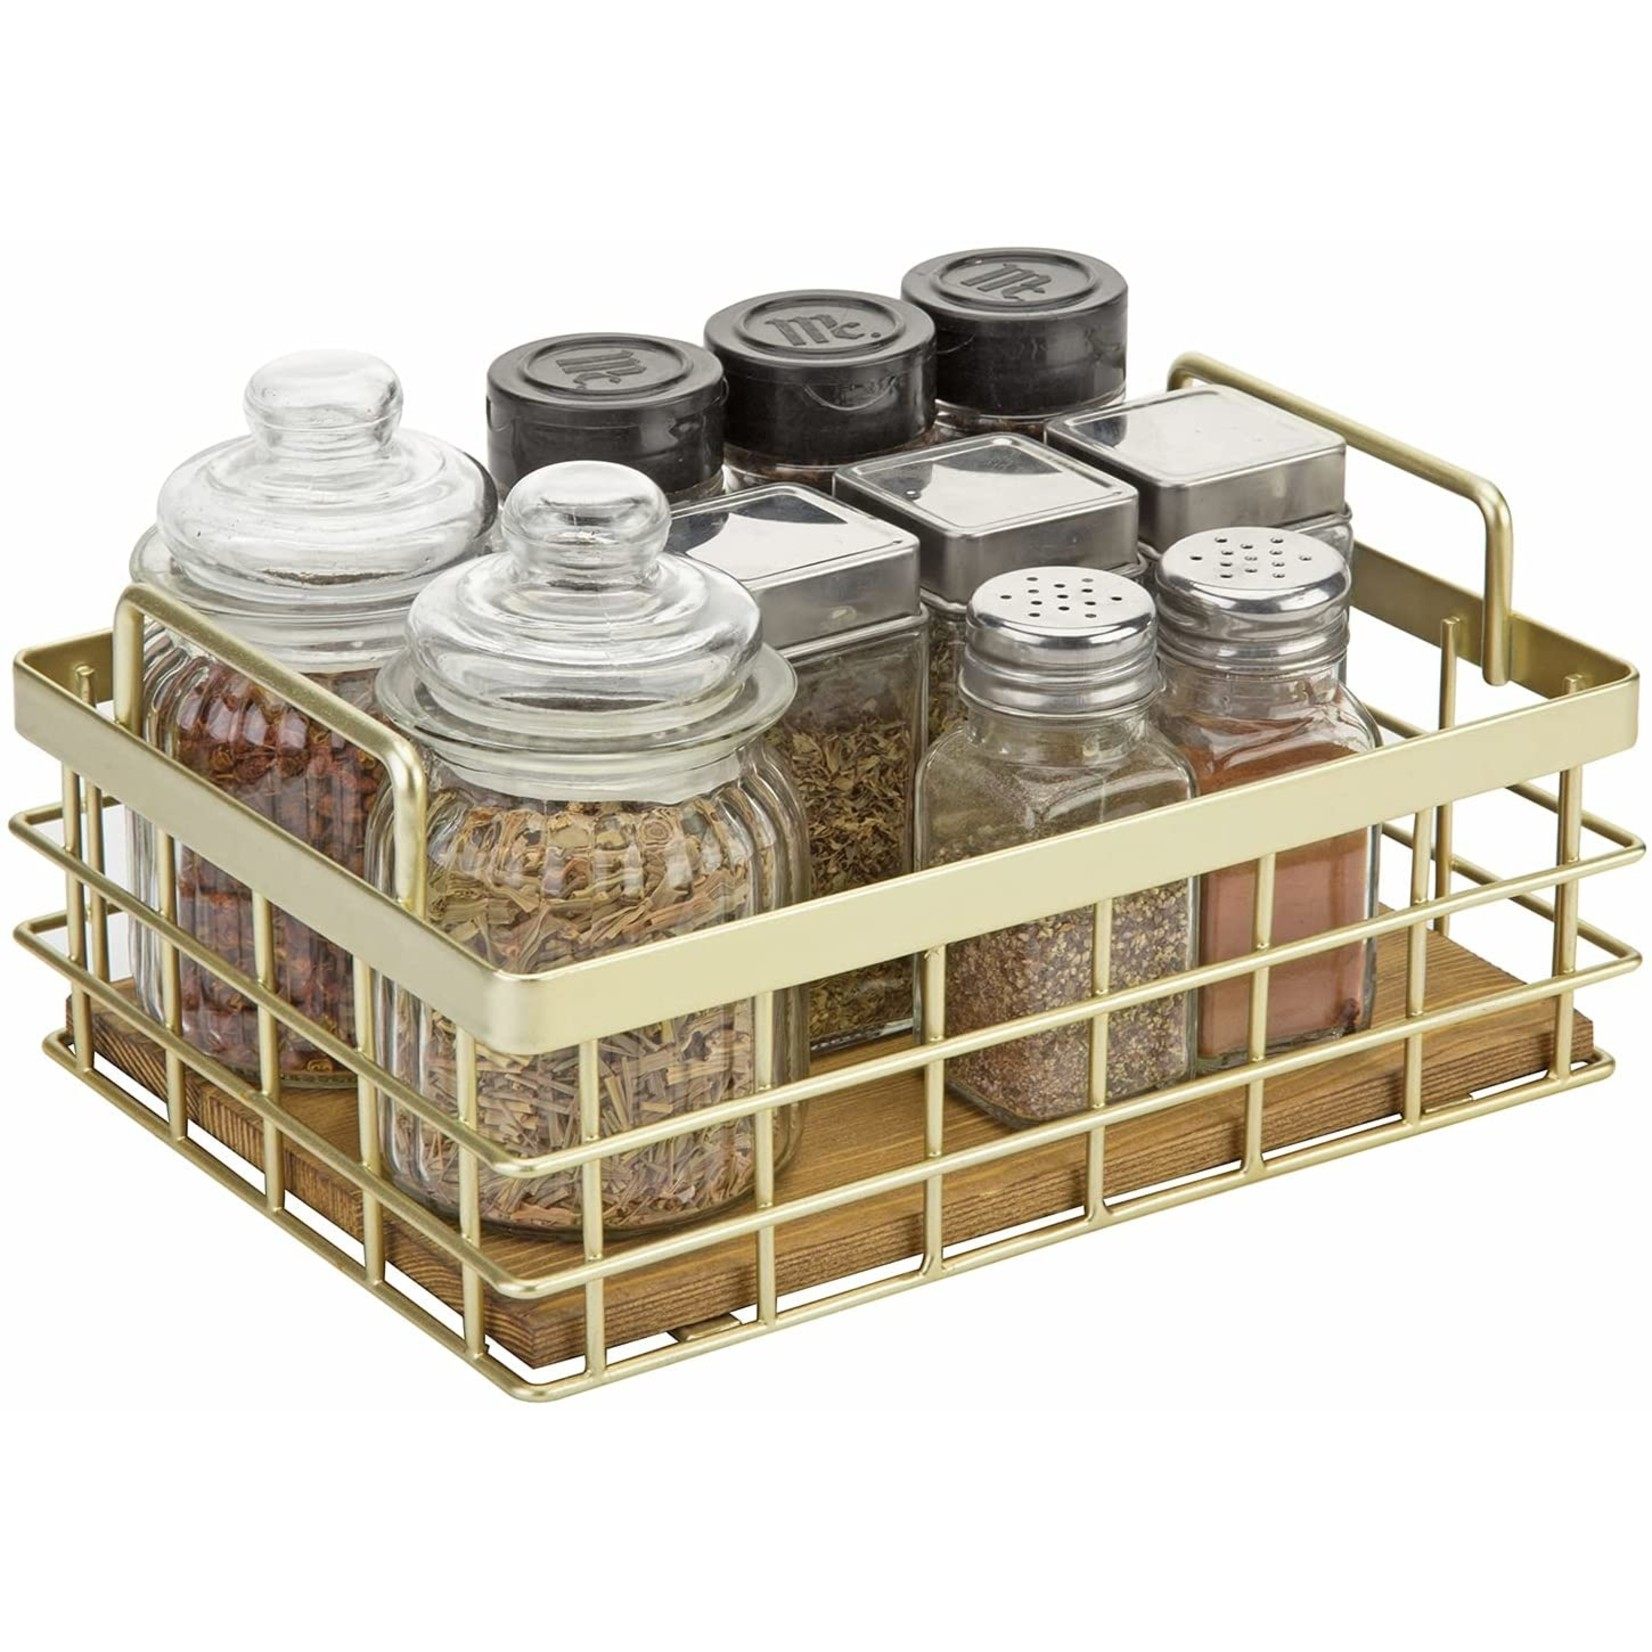 *Wood and Metal Decorative Basket Tray